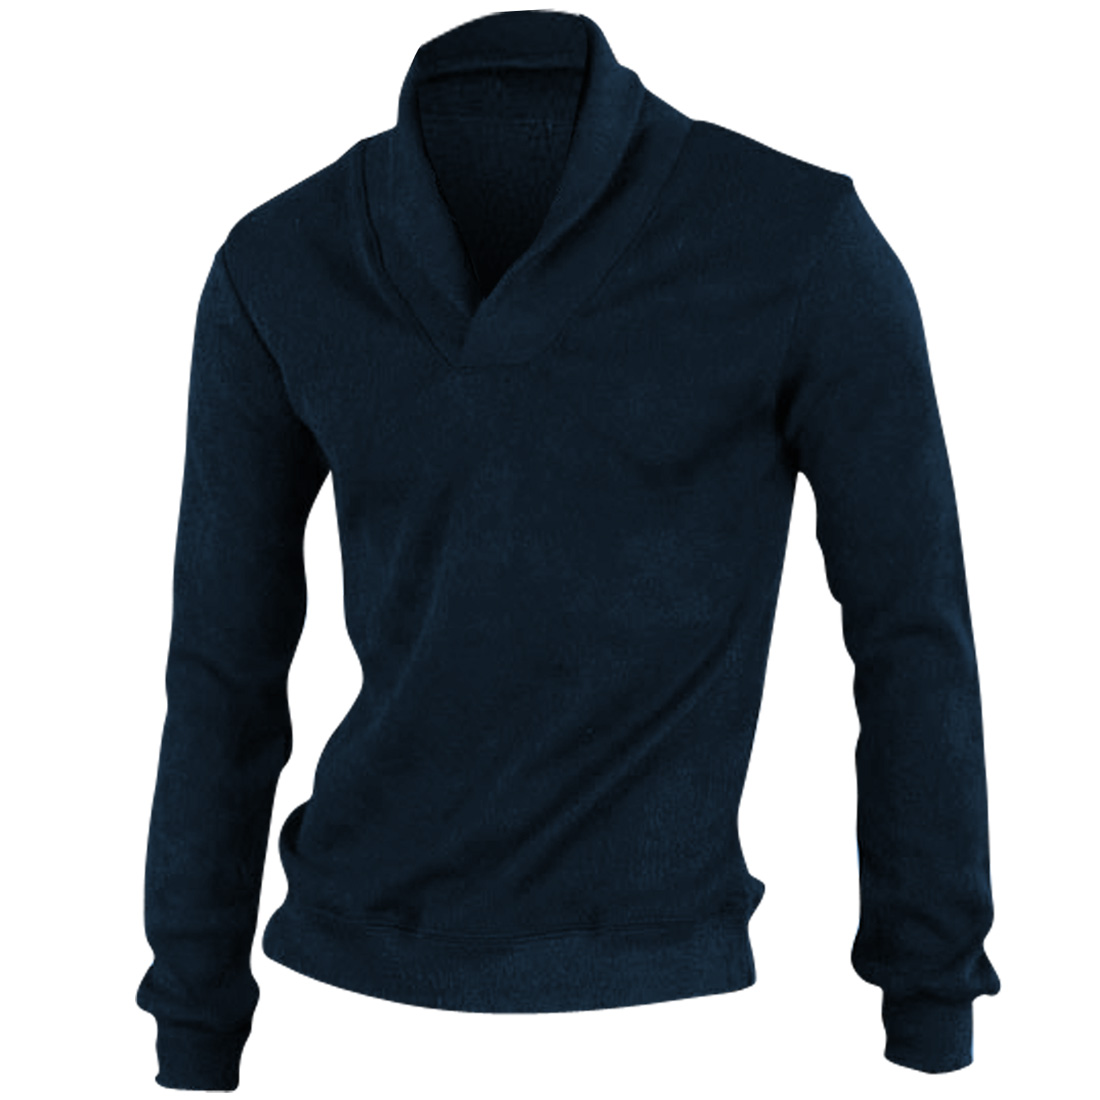 Men Stylish Convertible Collar Pullover Navy Knitting Shirt M